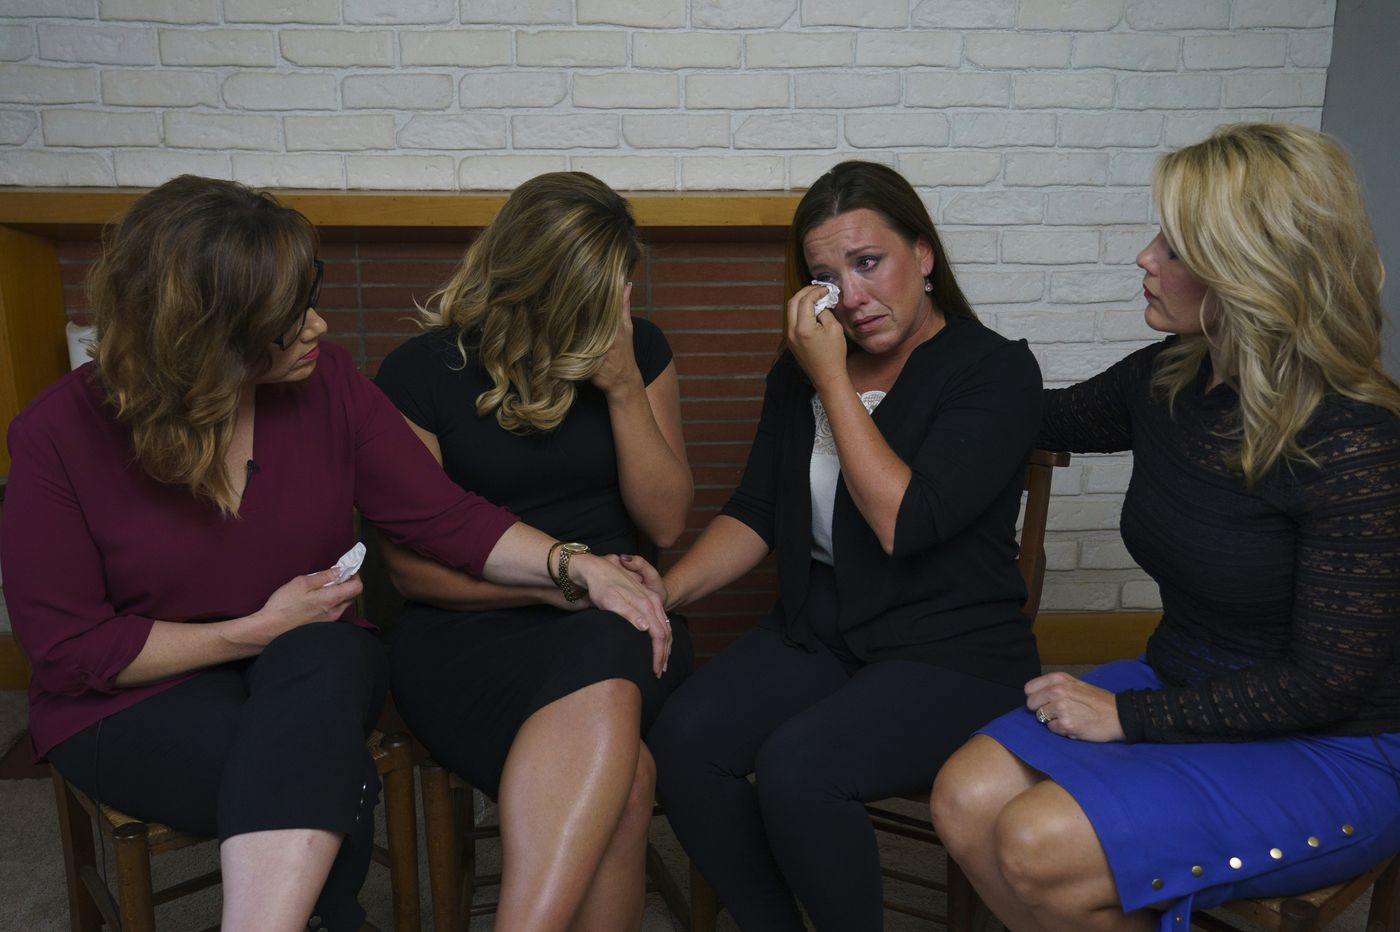 Pa. legislature stood up to frat hazing. Will it stand up to the Catholic Church to give justice to sex abuse victims? | Editorial